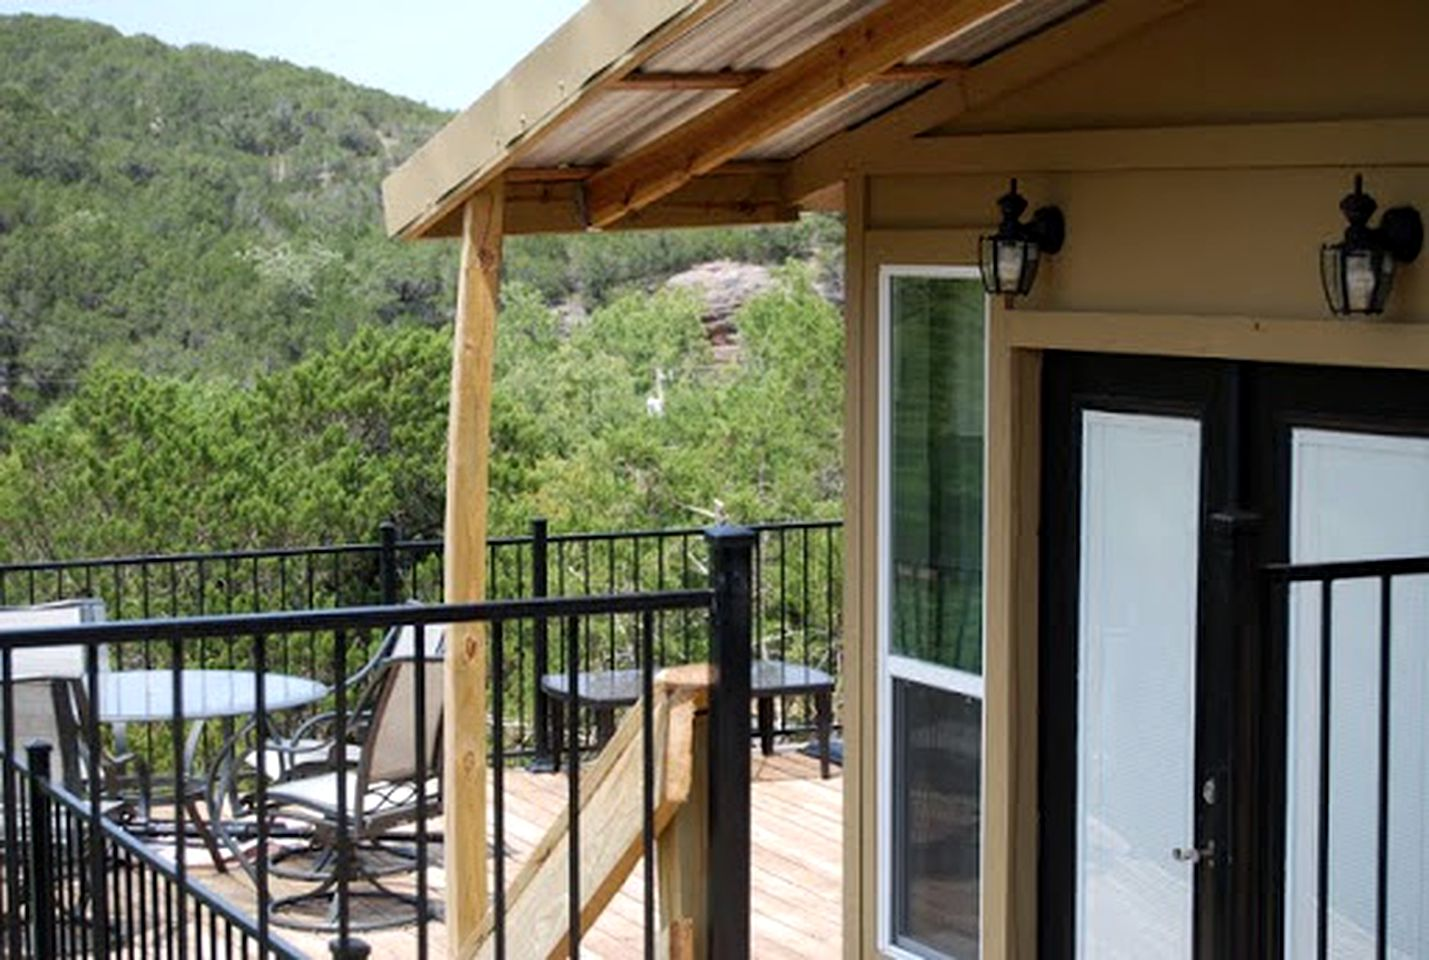 The rental comes with views near Turner Falls. Cabins here are ideal for glamping in Oklahoma